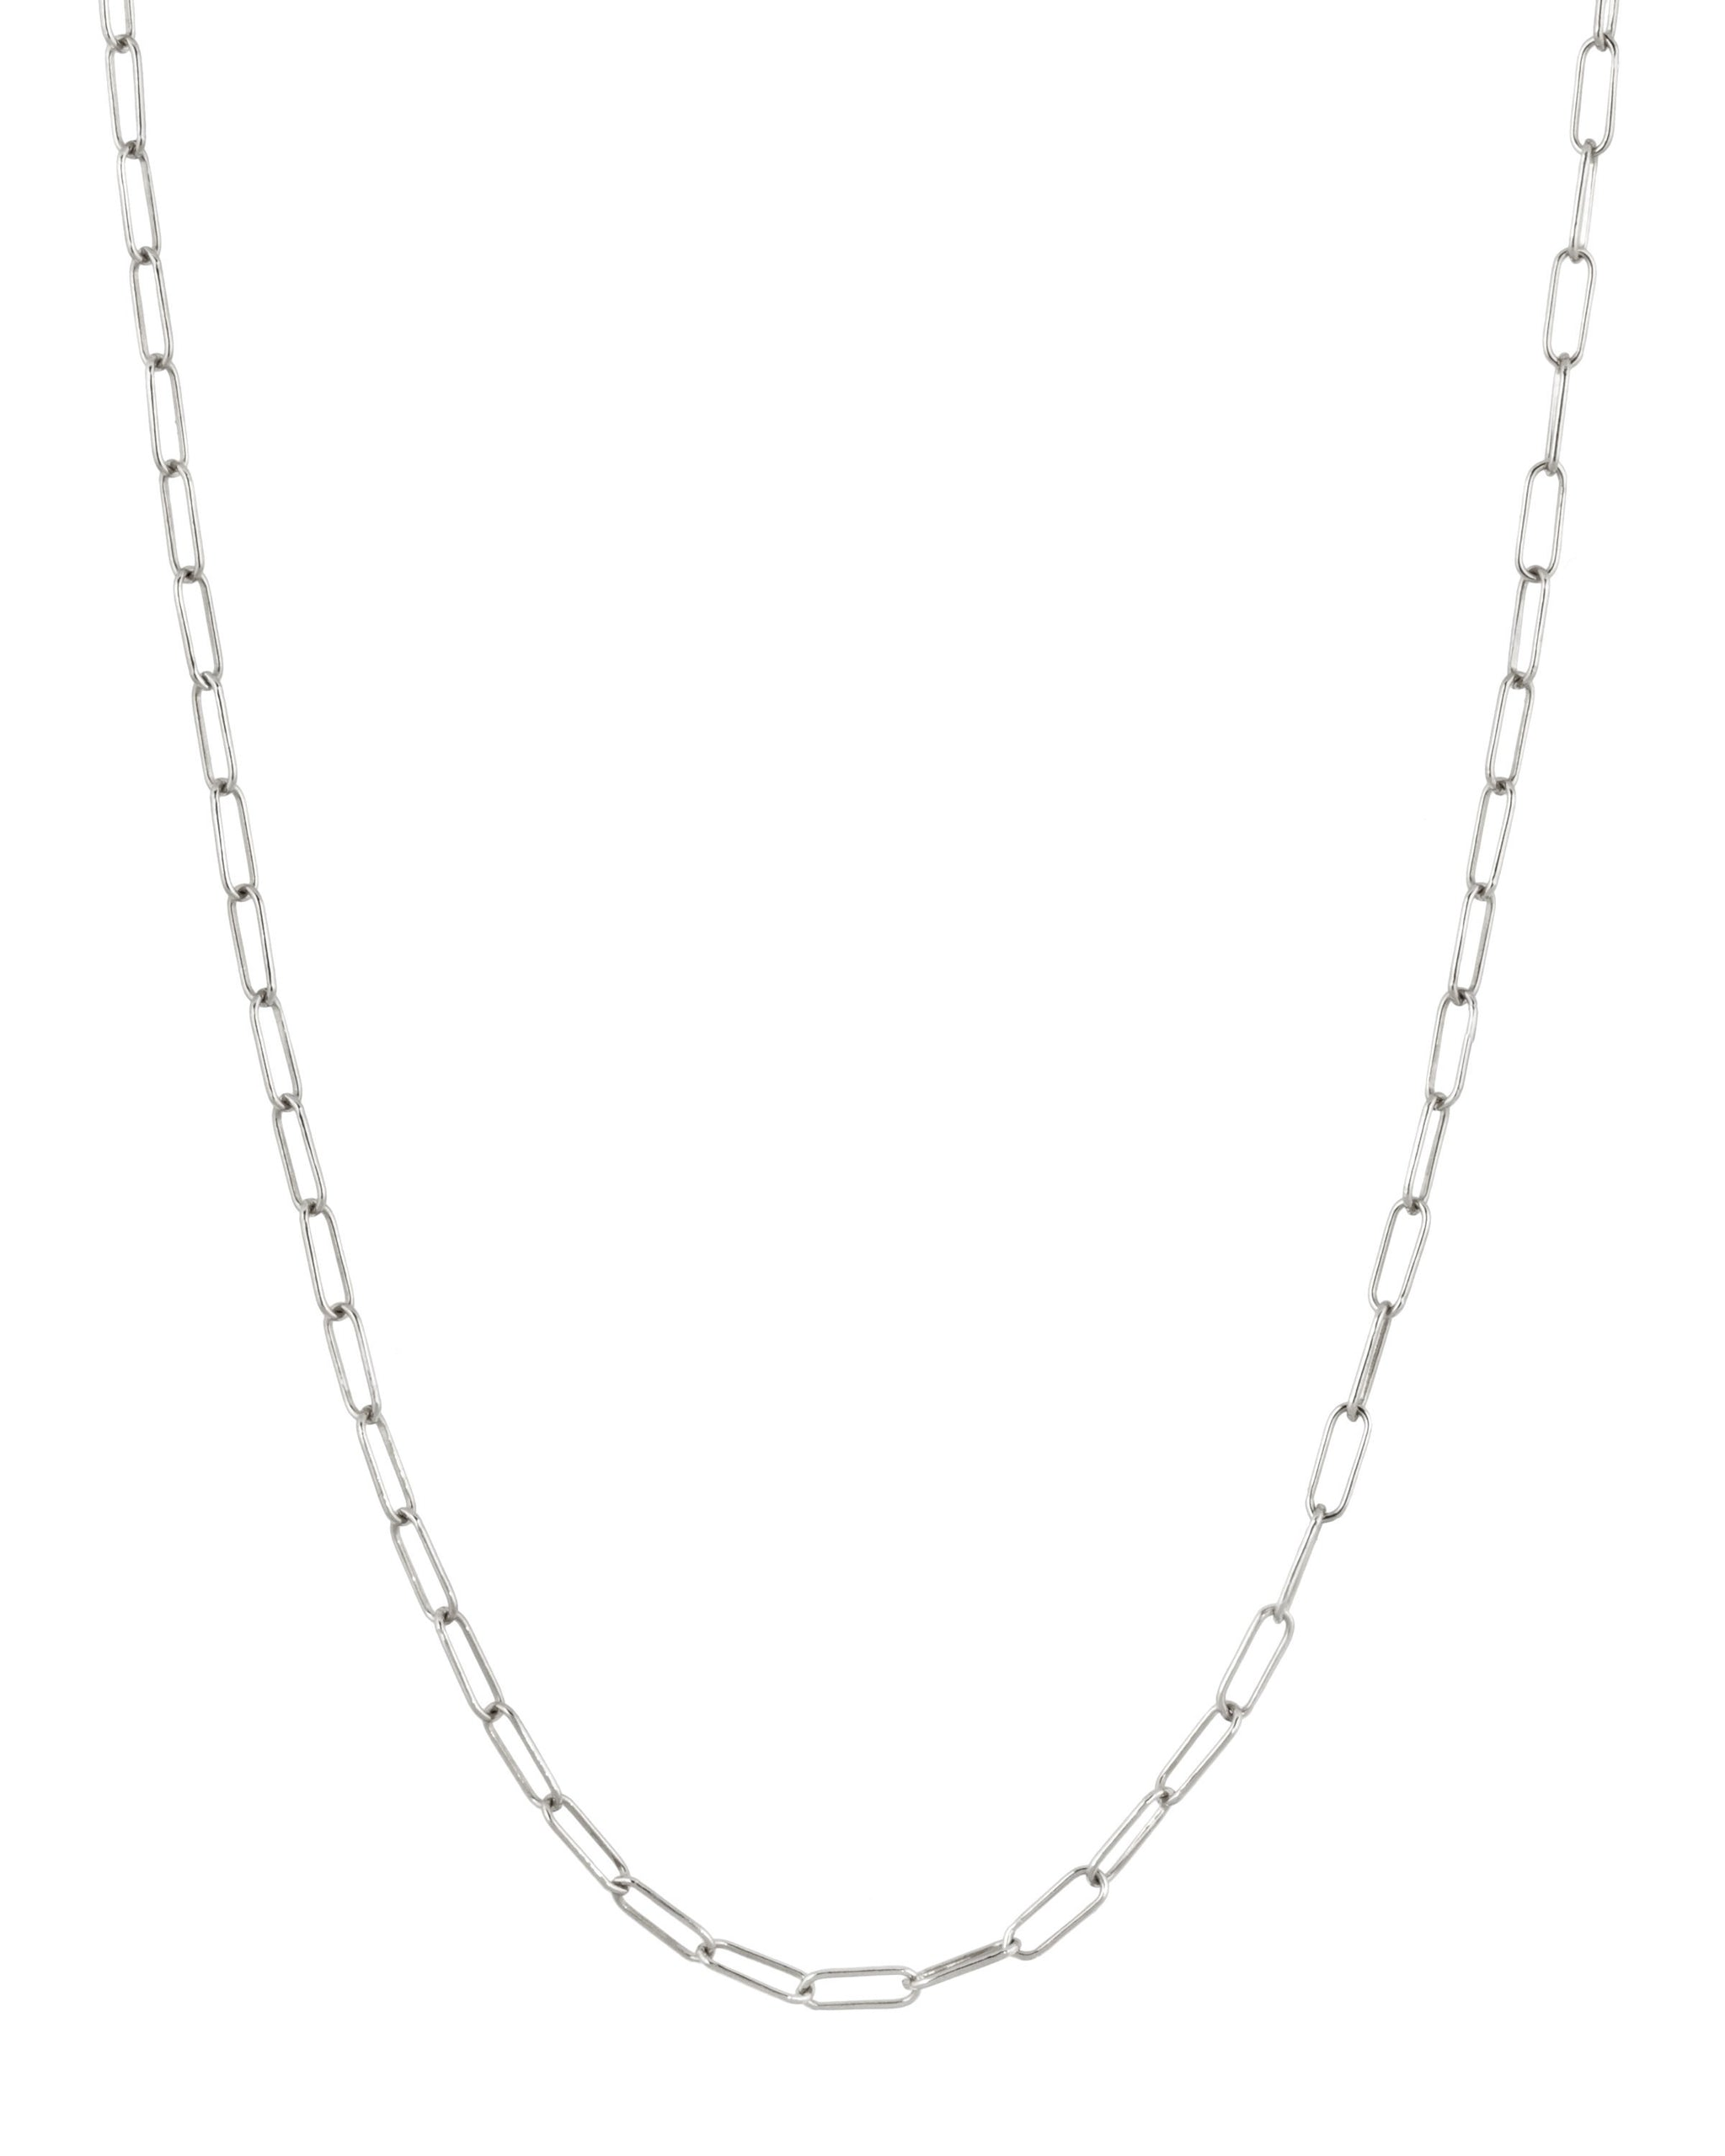 SKINNY PAPERCLIP CHAIN - Sterling Silver